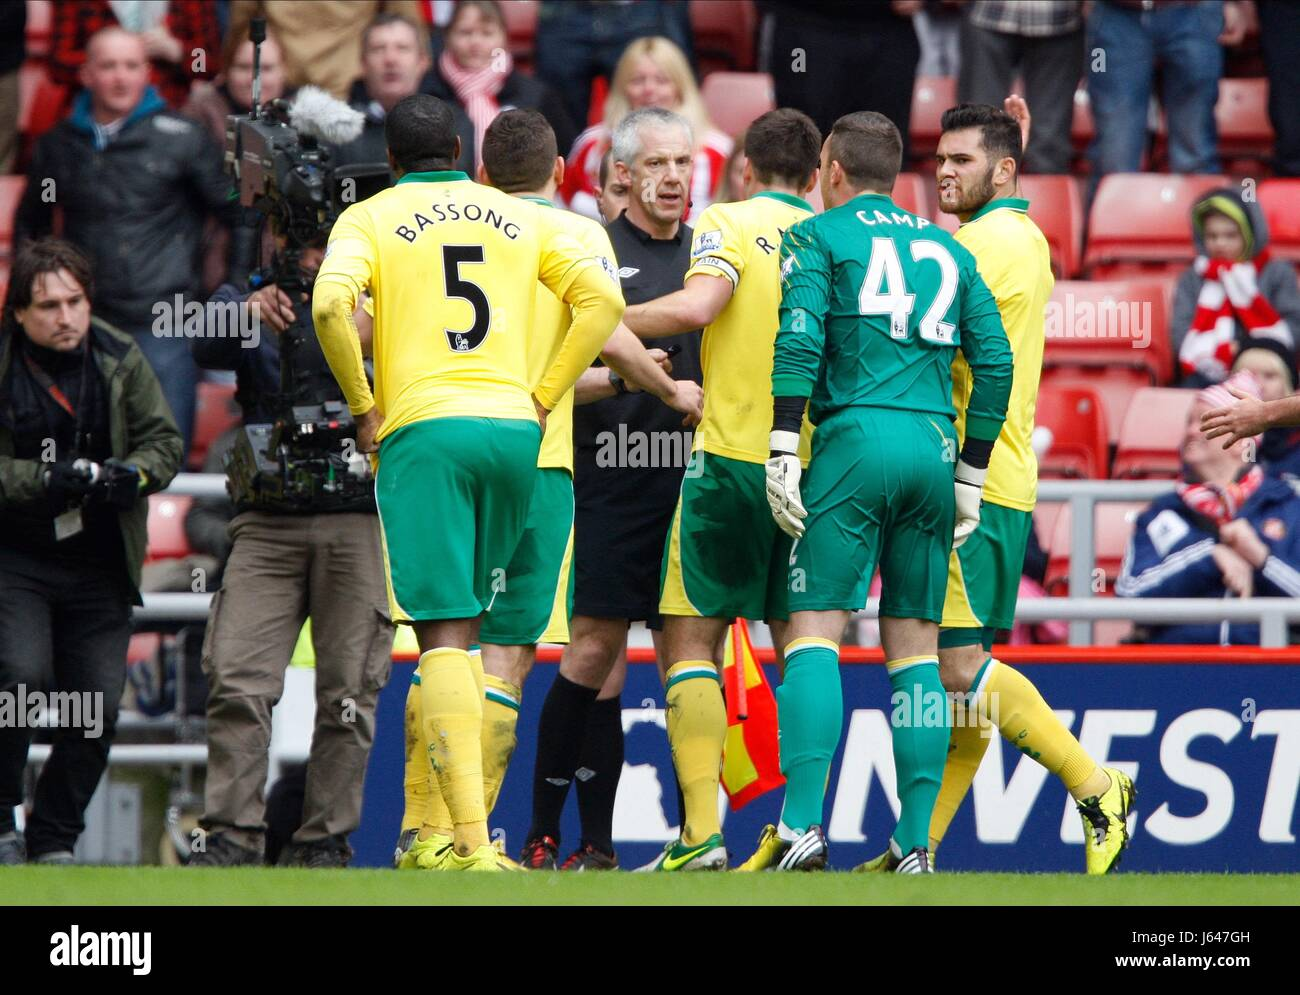 NORWICH PLAYERS CONFRONT REFER SUNDERLAND V NORWICH CITY FC STADIUM OF LIGHT SUNDERLAND ENGLAND 17 March 2013 - Stock Image